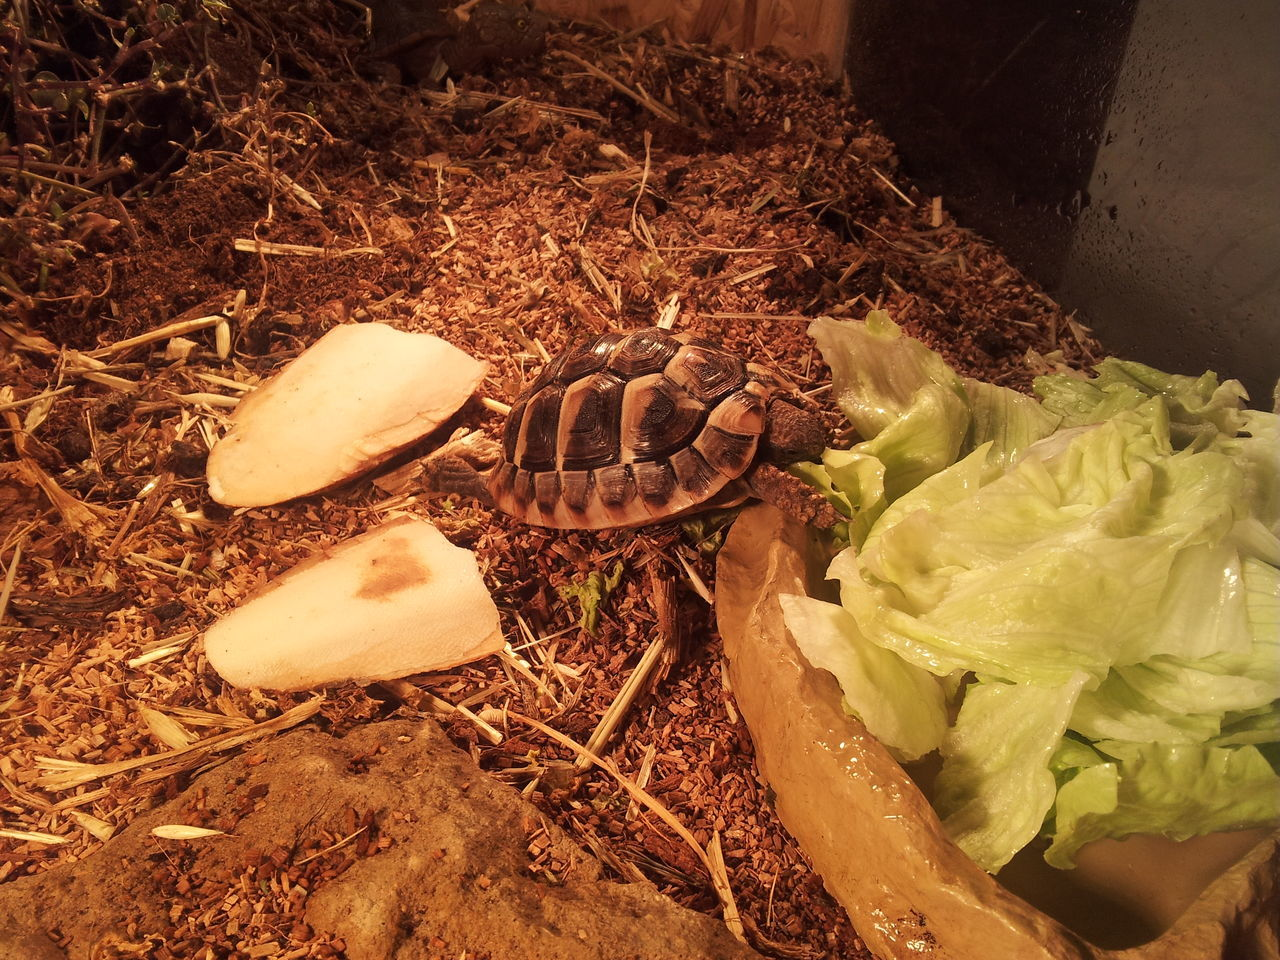 #Bowser #Cooper #Greek #Greek Tortoises #Haustier #Nature  #pet #Schildkröte #turtle #Turtles